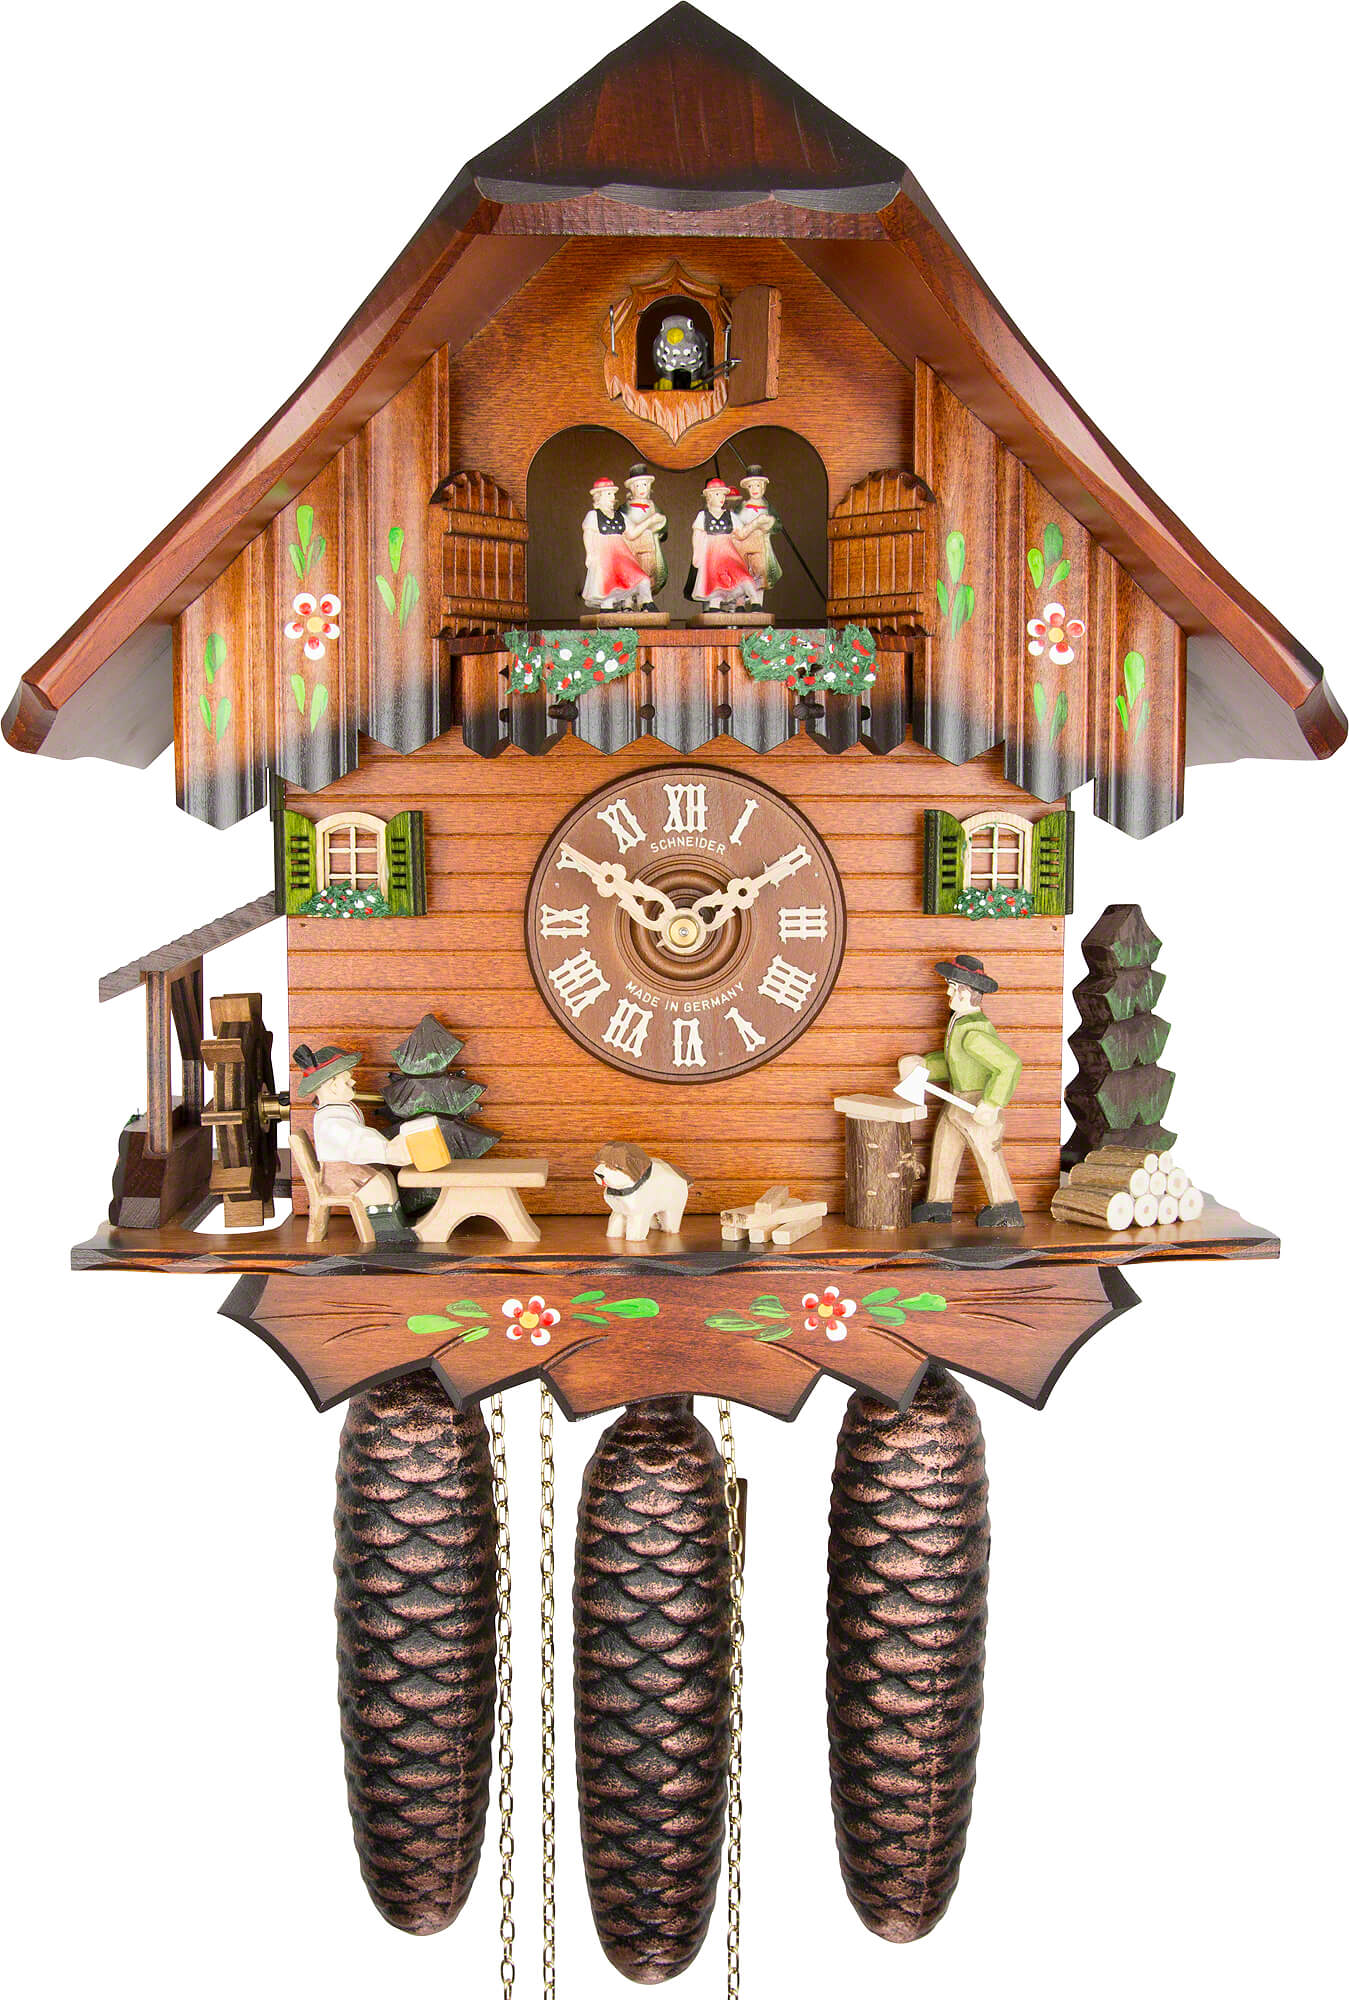 Cuckoo clock 8 day movement chalet style 32cm by anton How to make a cuckoo clock